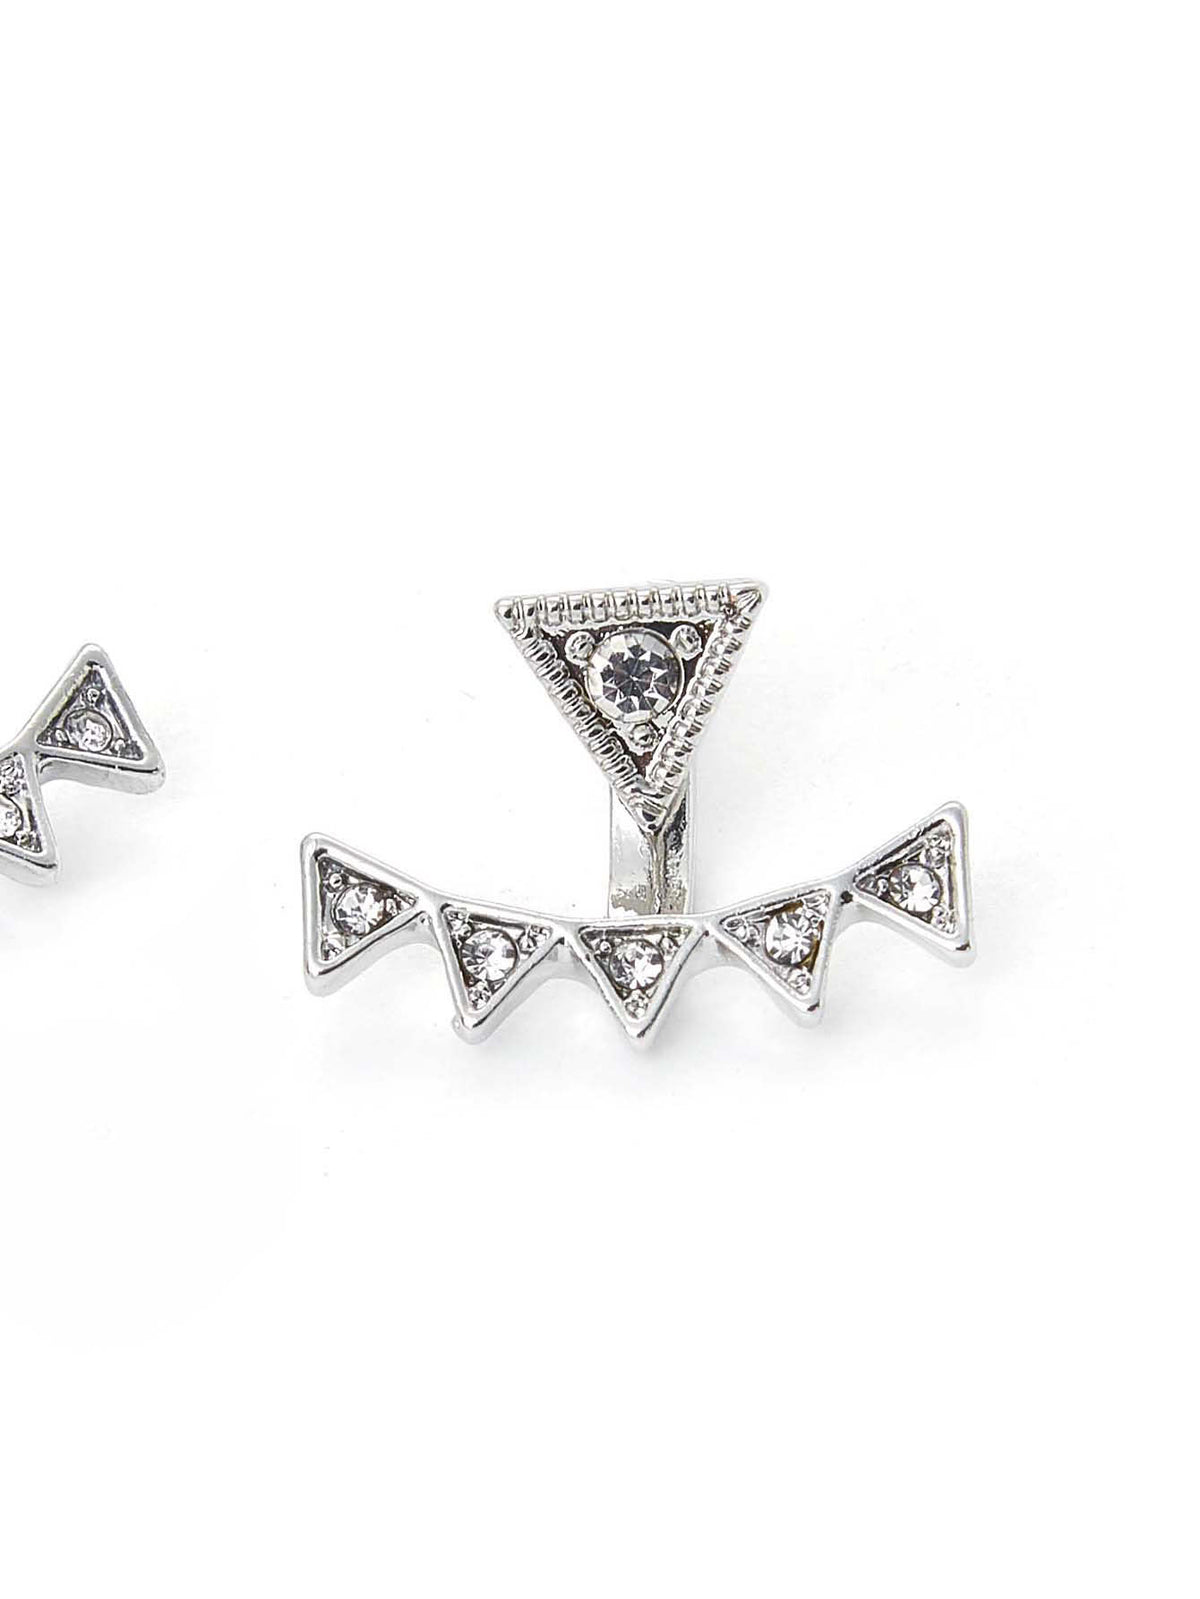 Rhinestone Triangle Design Ear Jacket